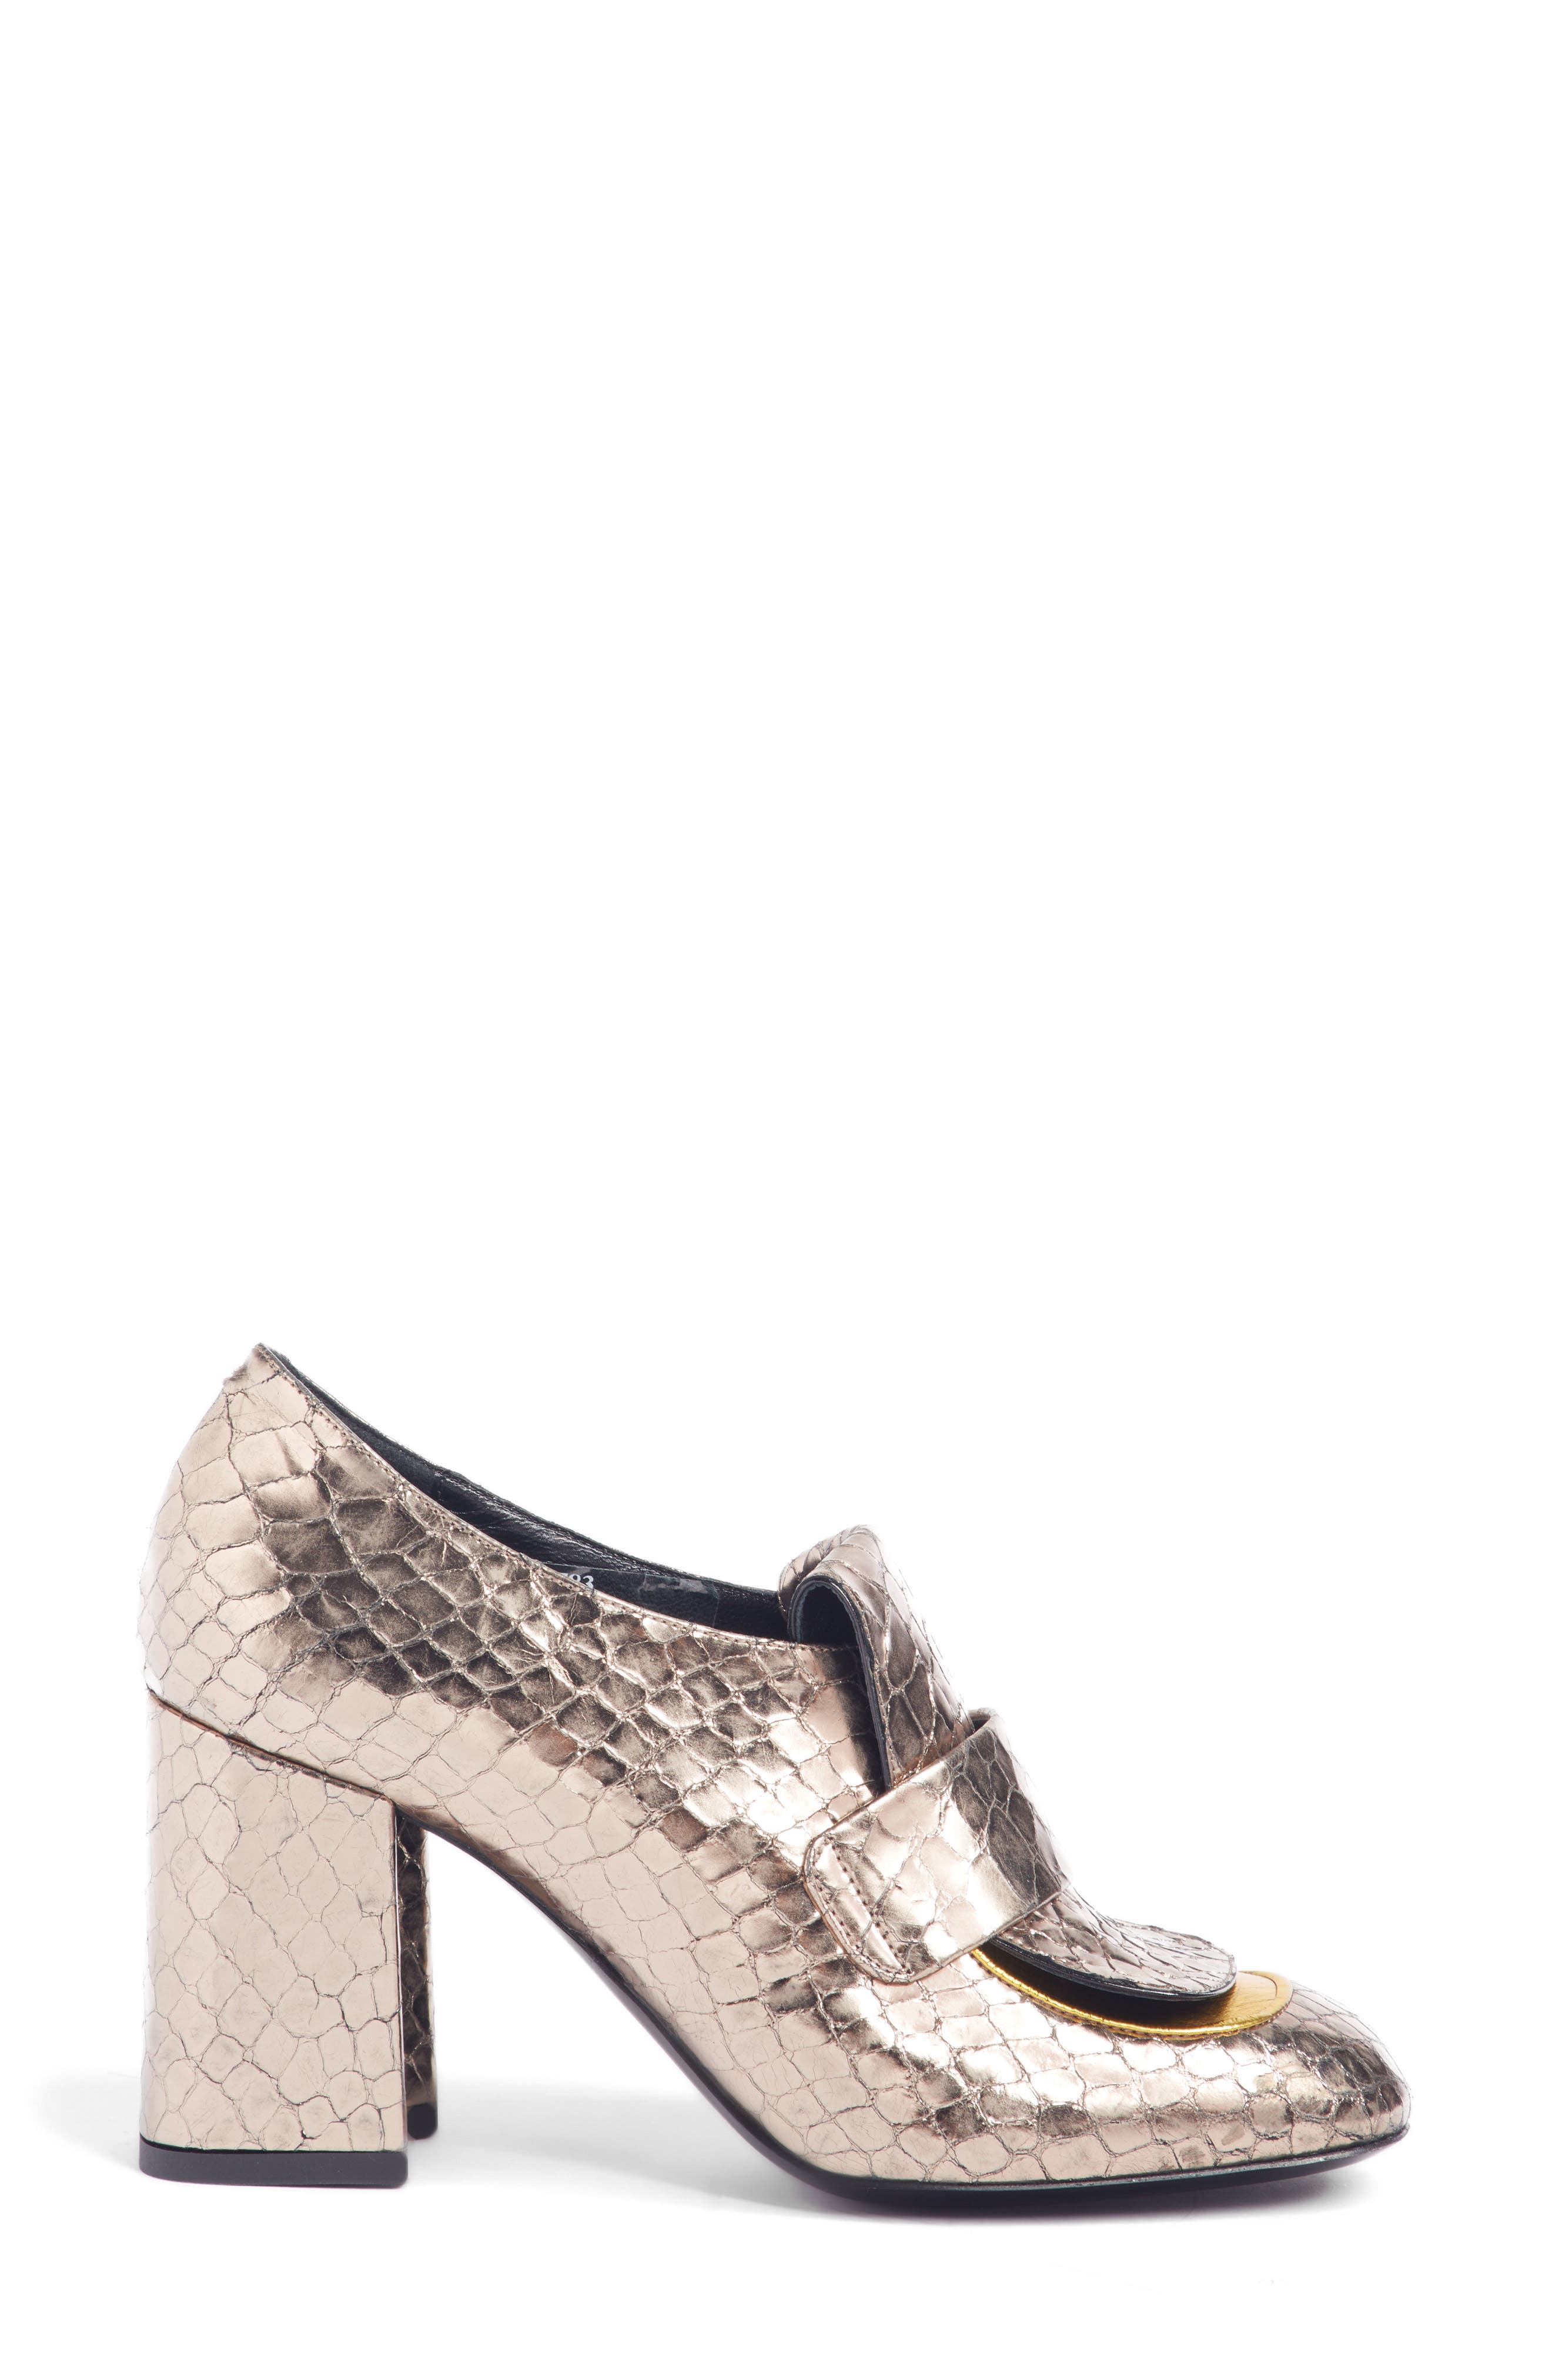 Reptile Loafer Pump,                             Alternate thumbnail 3, color,                             SILVER